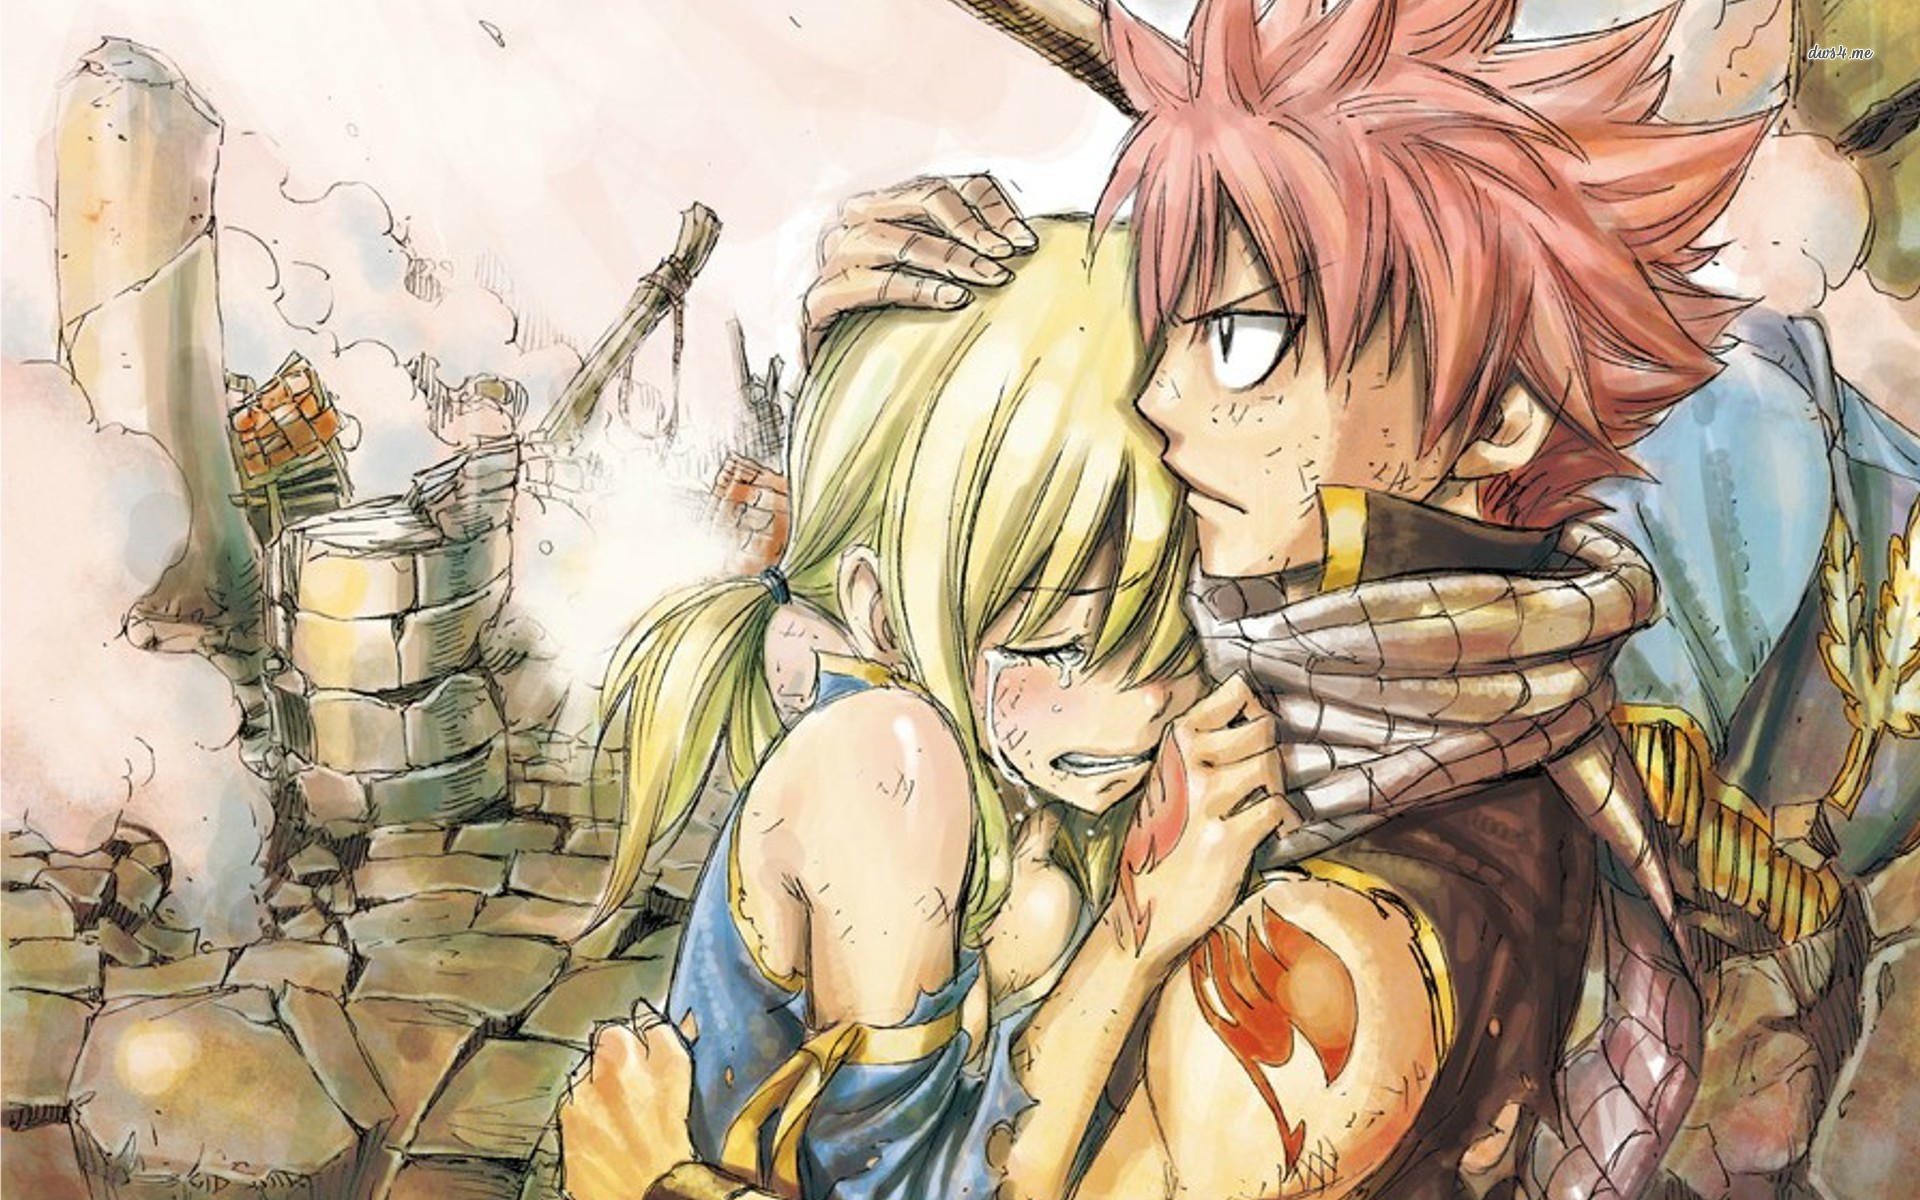 tags fairy tail natsu fairy lucy date 14 07 15 resolution 1920x1200 1920x1200